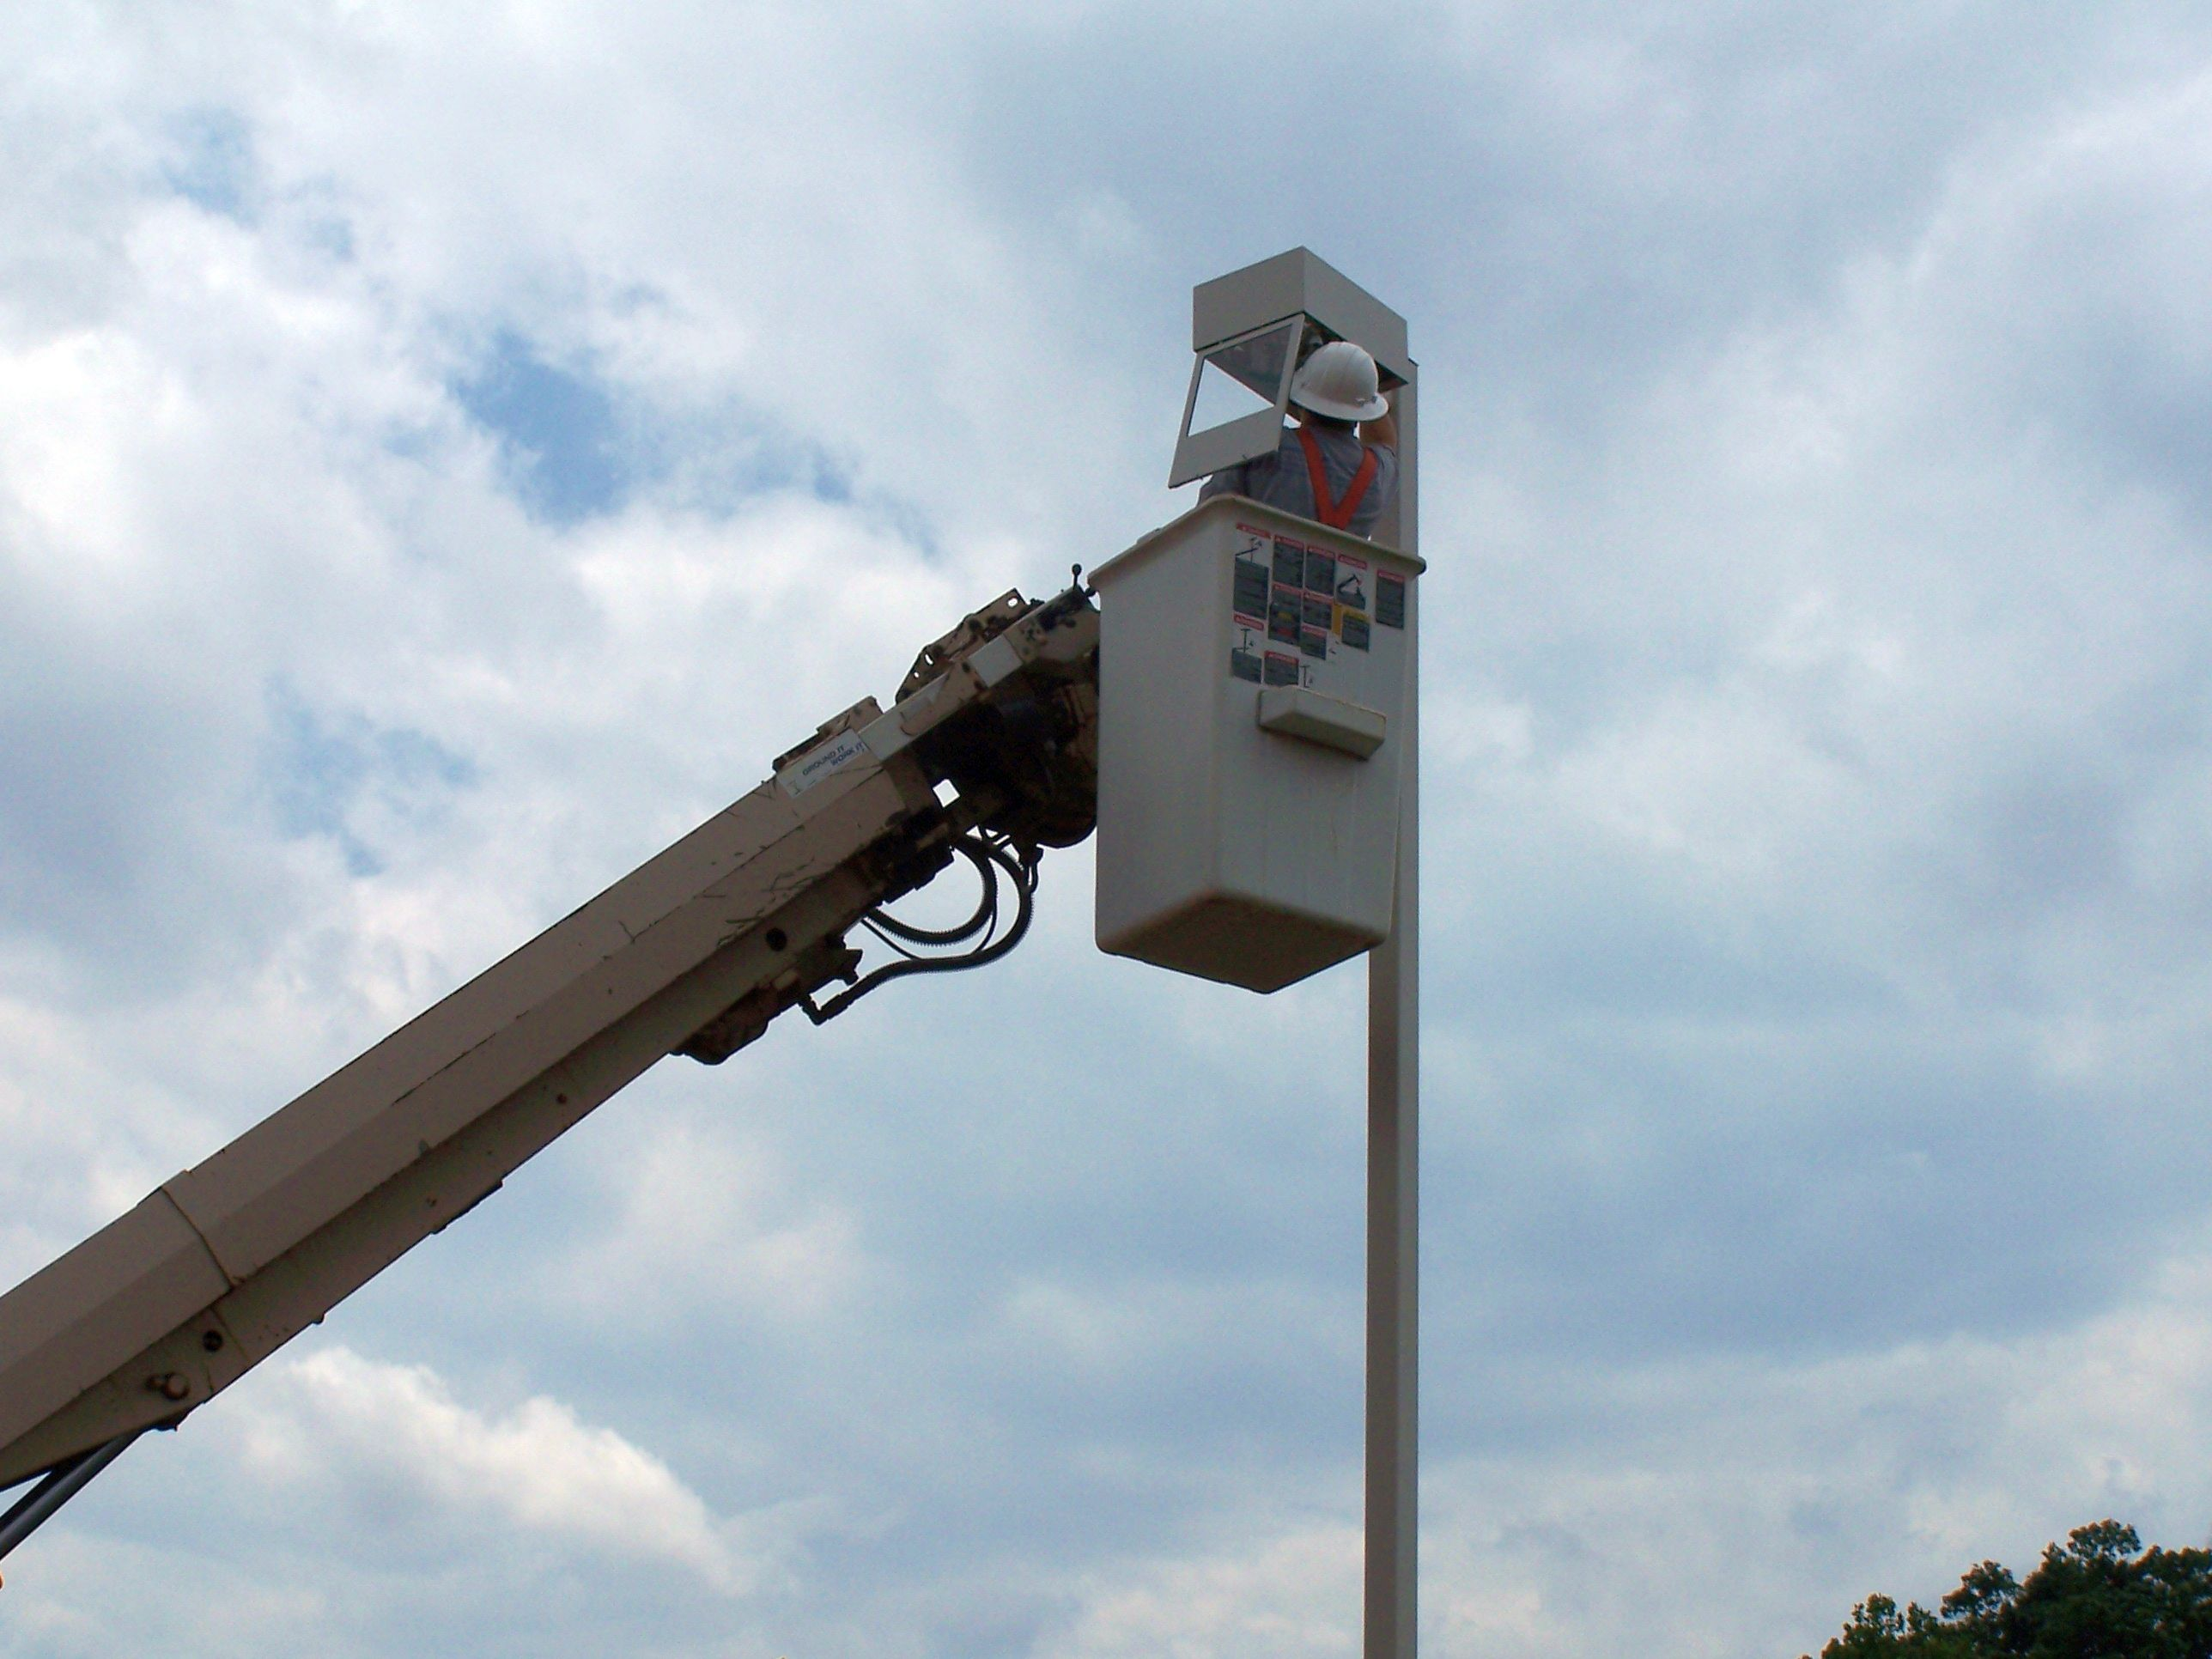 Electrician wiring a Parking Lot Lighting Pole